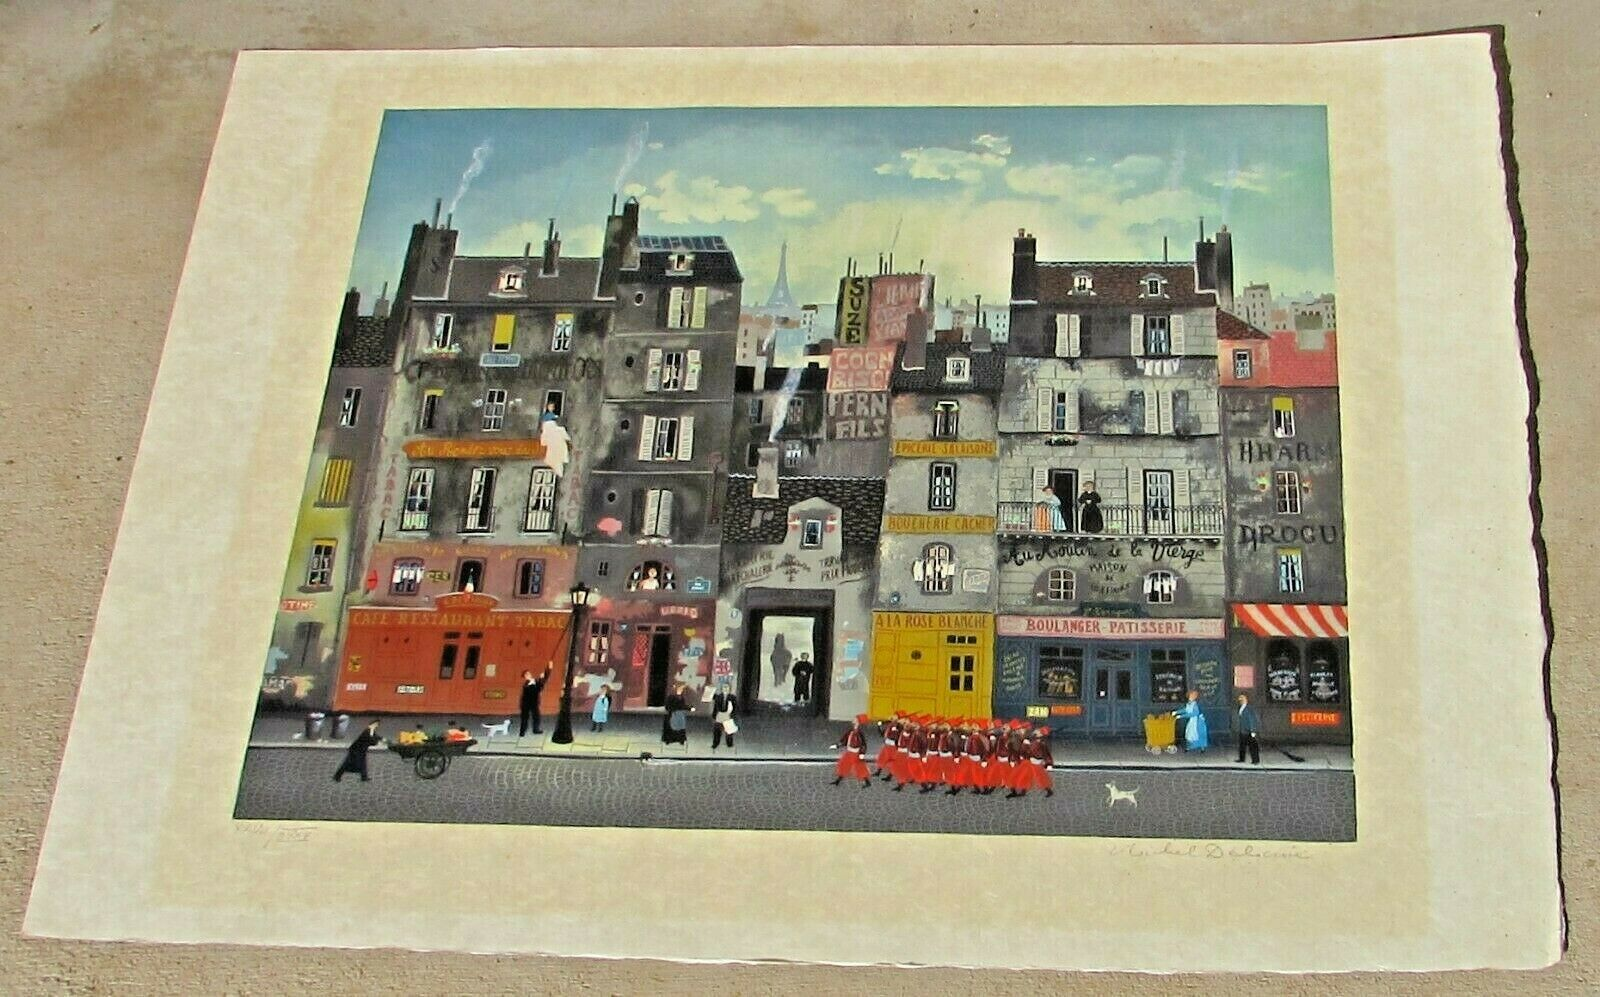 MICHEL DELACROIX Marching Soldiers S/N Lithograph 28/125 on wove paper on eBay thumbnail